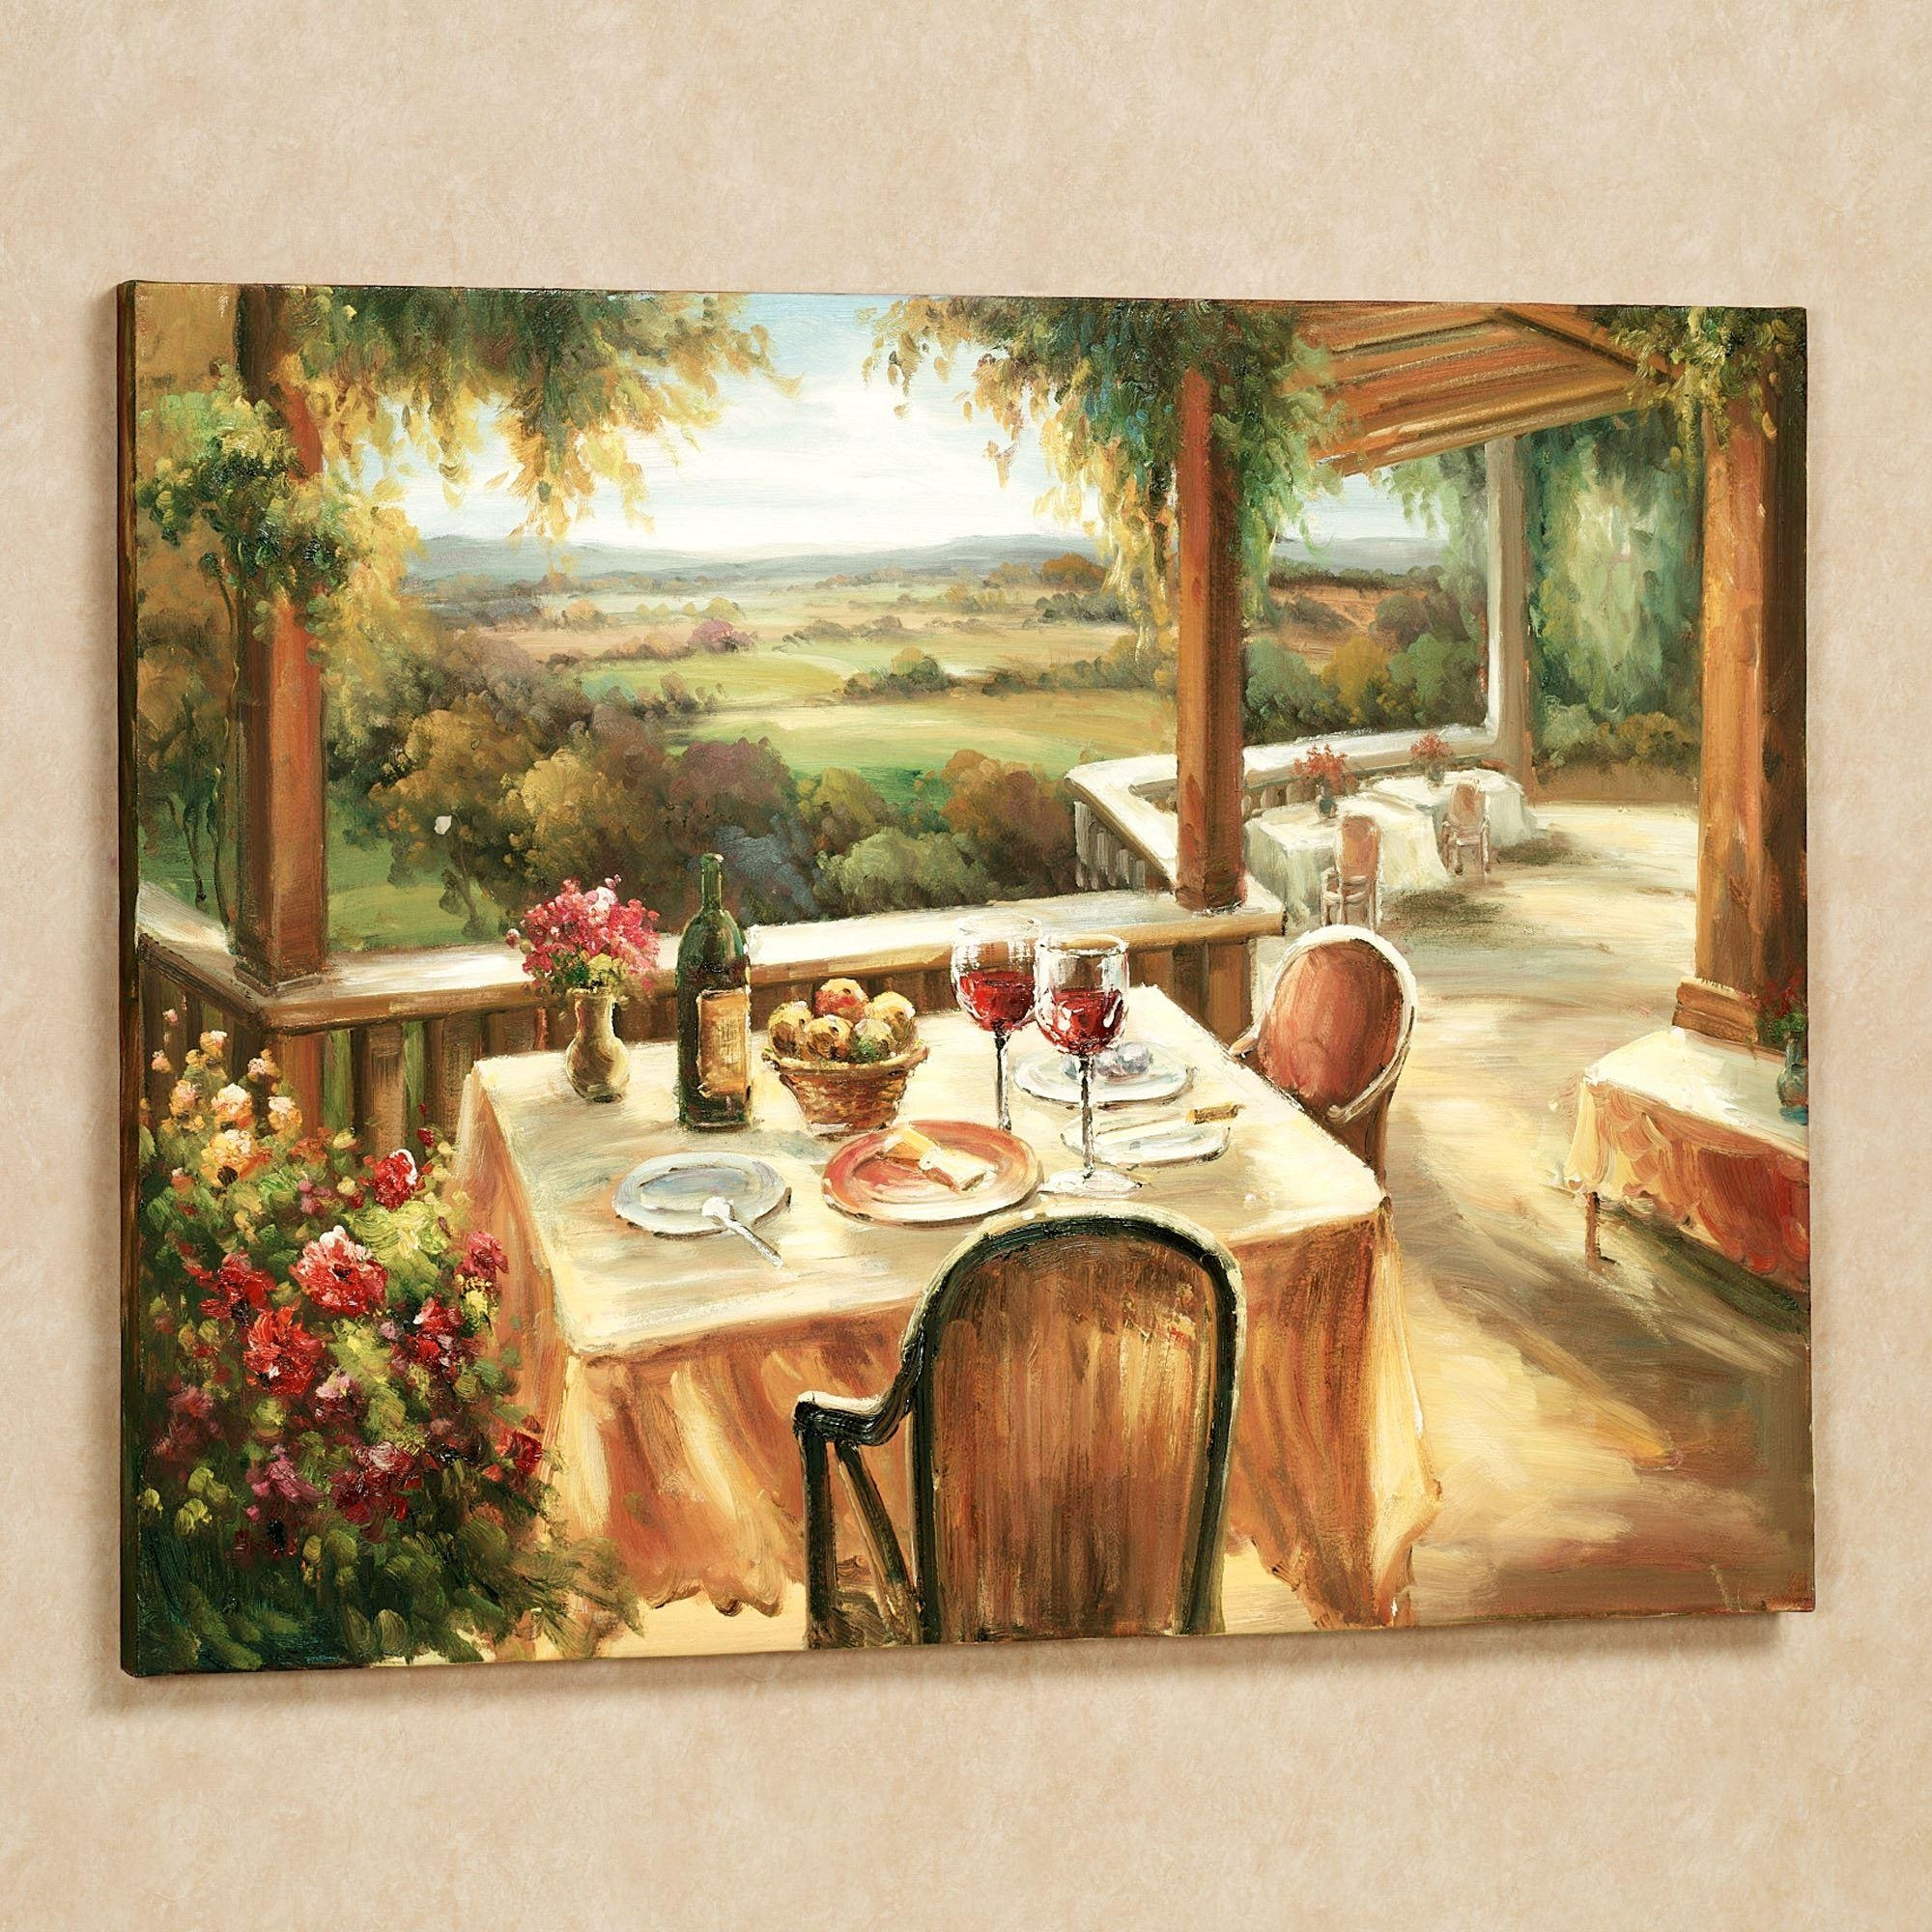 Italian Wall Art For Living Room : Choices of framed italian wall art ideas